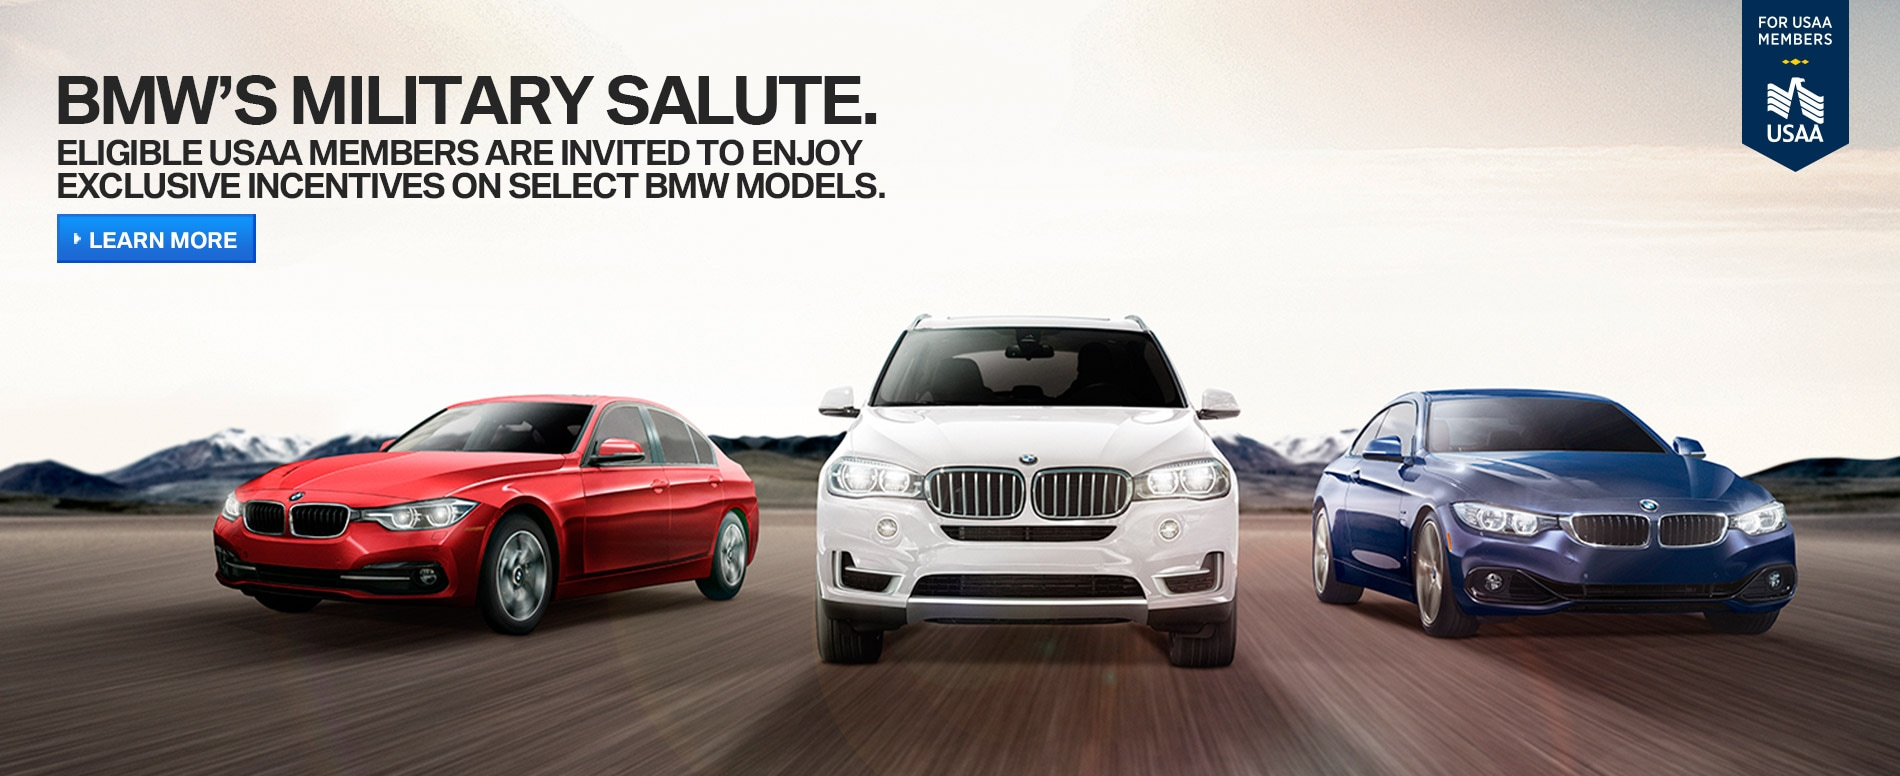 New Used BMW Dealership In Middletown RI